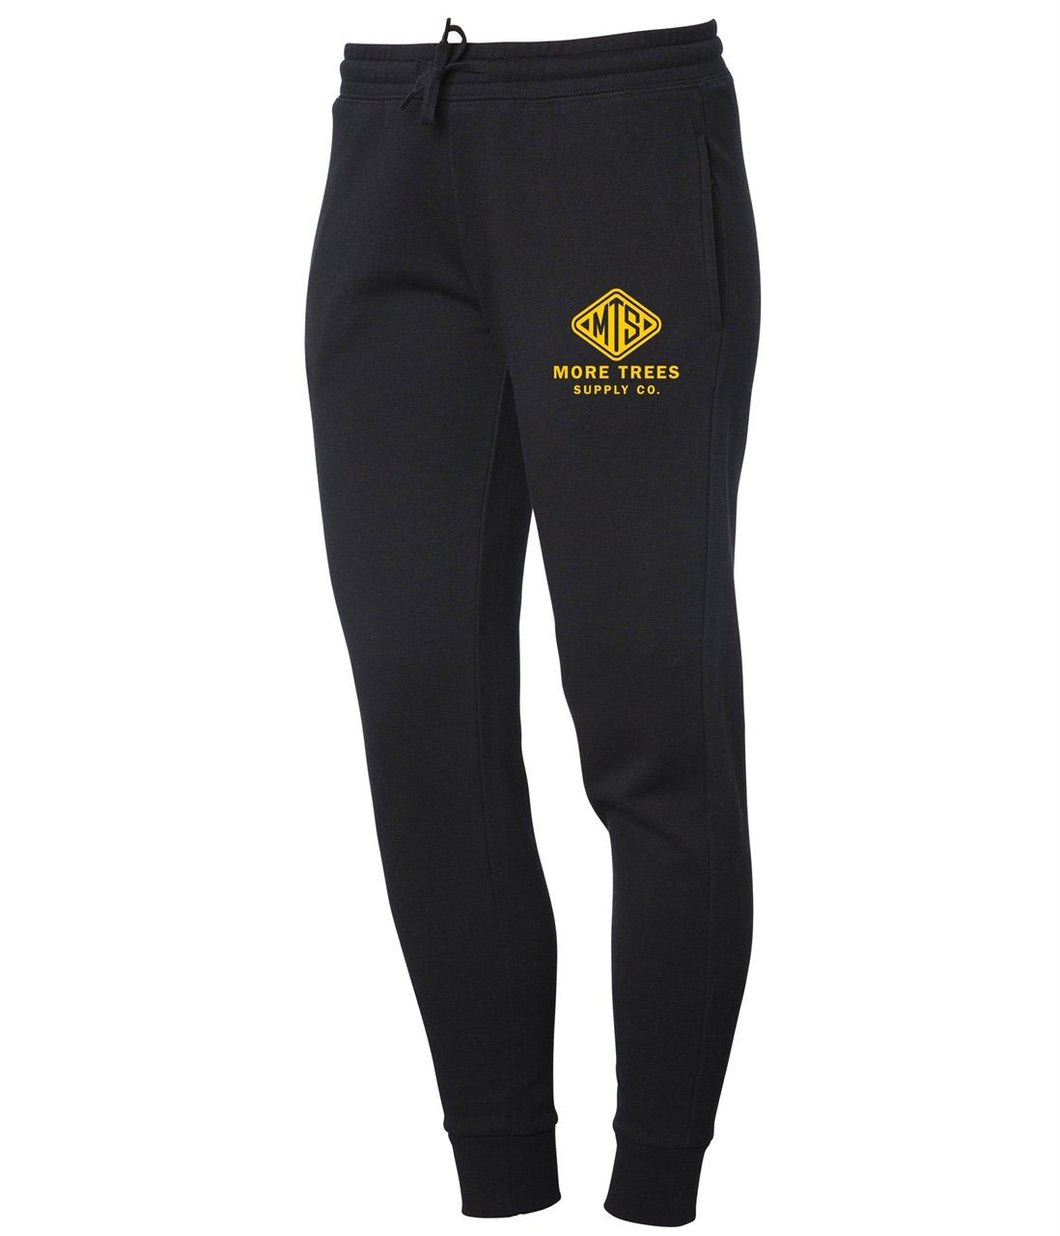 MTS Women's Sweatpants - Black